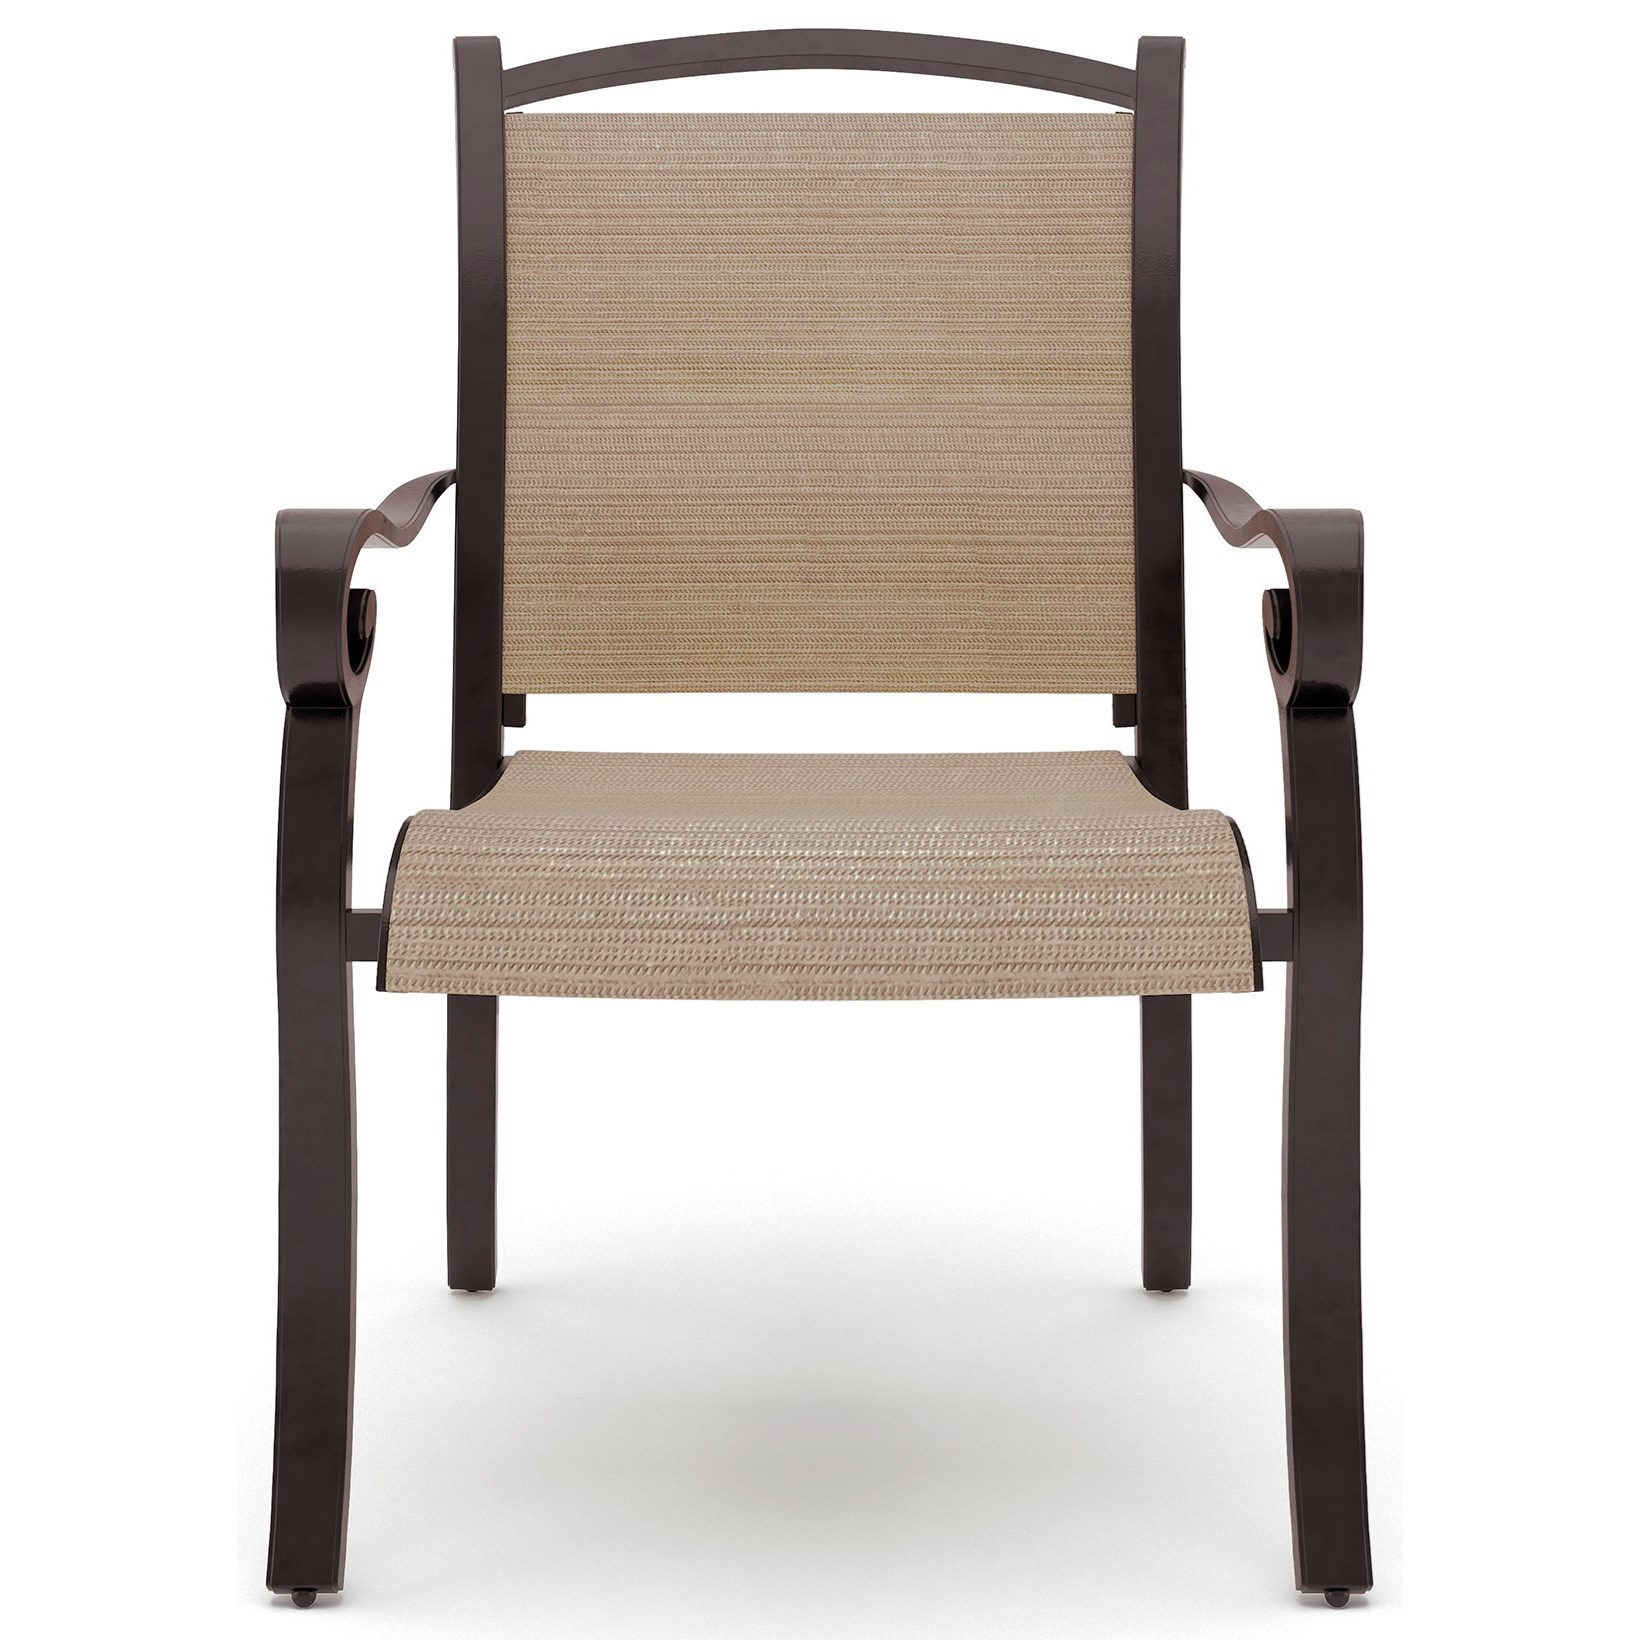 outdoor sling chairs. Set Of 4 Sling Chairs Outdoor T